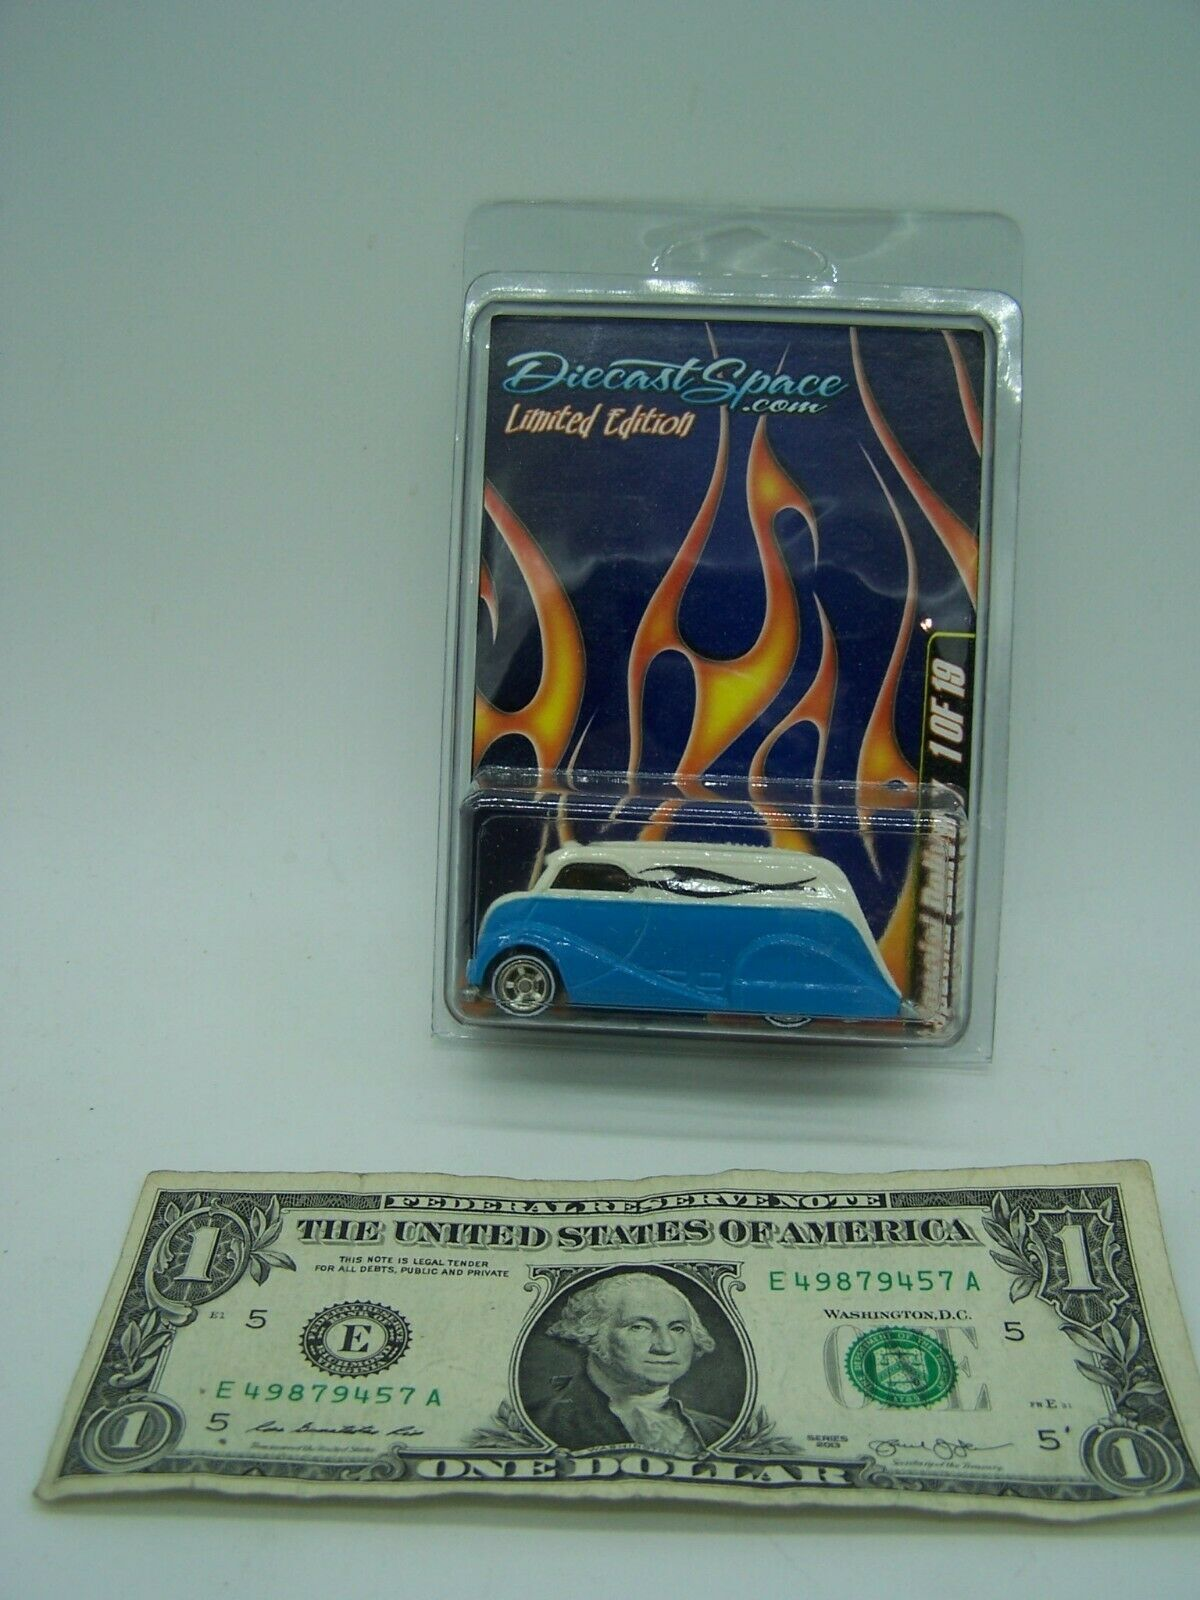 Diecast Space blueee Deco Delivery Limited Edition 1 of 19 Made - In Predector -RR